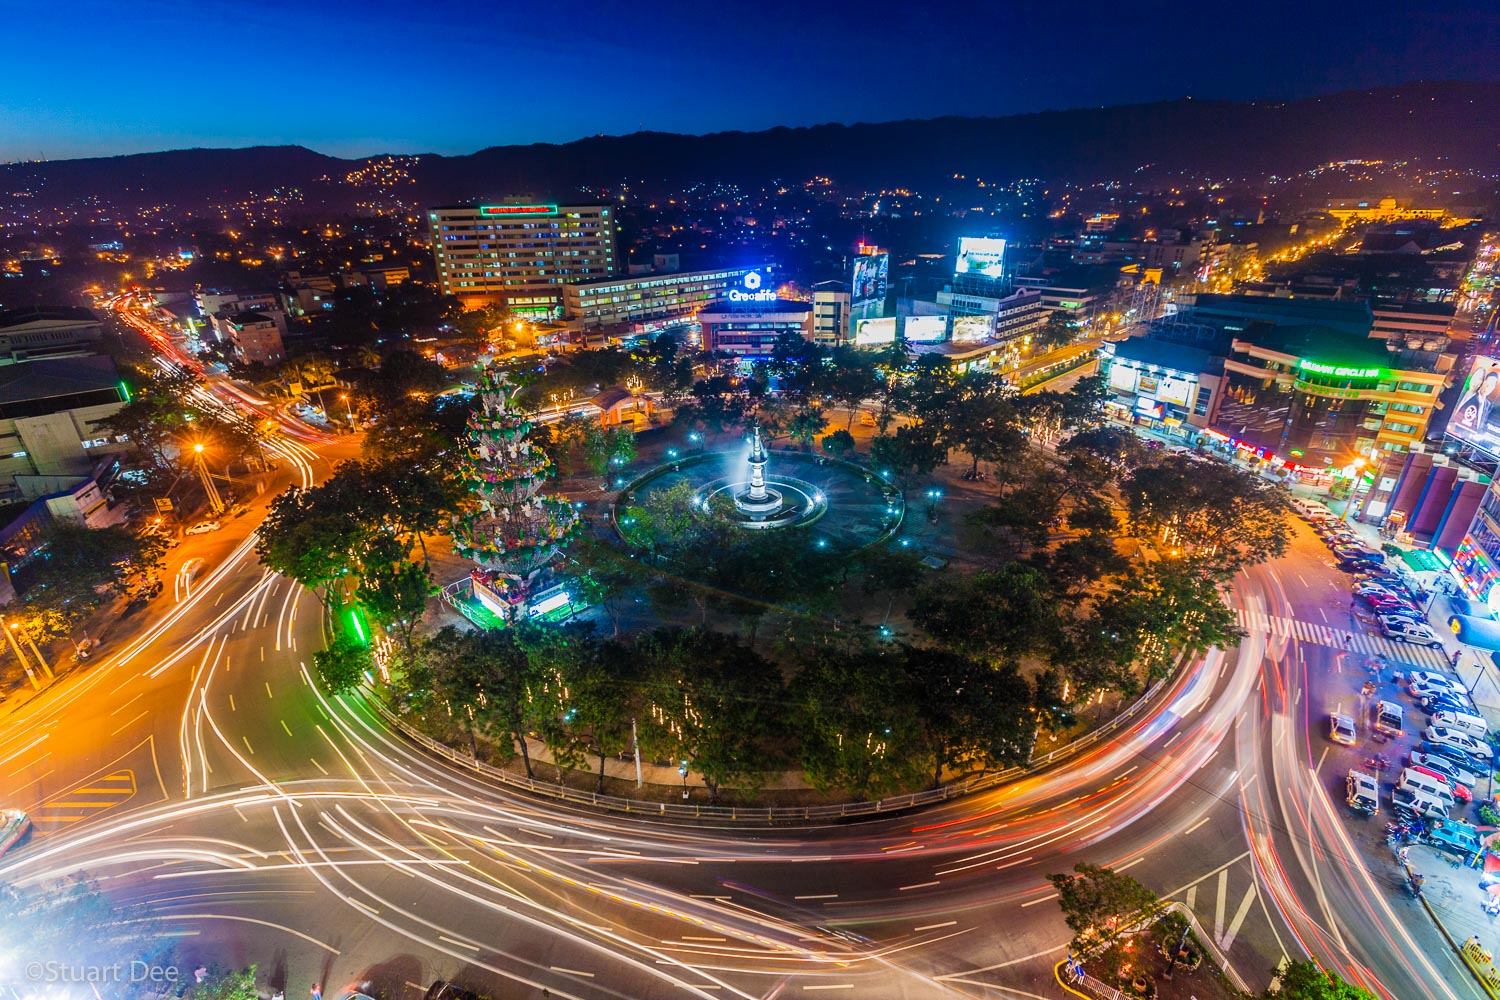 Aerial view of Fuente Osmena Circle and dusk/night, , Cebu City, Cebu, Philippines. Osmena circle is the center of Cebu City and is the landmark symbol of the city. Cebu City is the Capital of Cebu, and is the second largest city in the country after Manila.